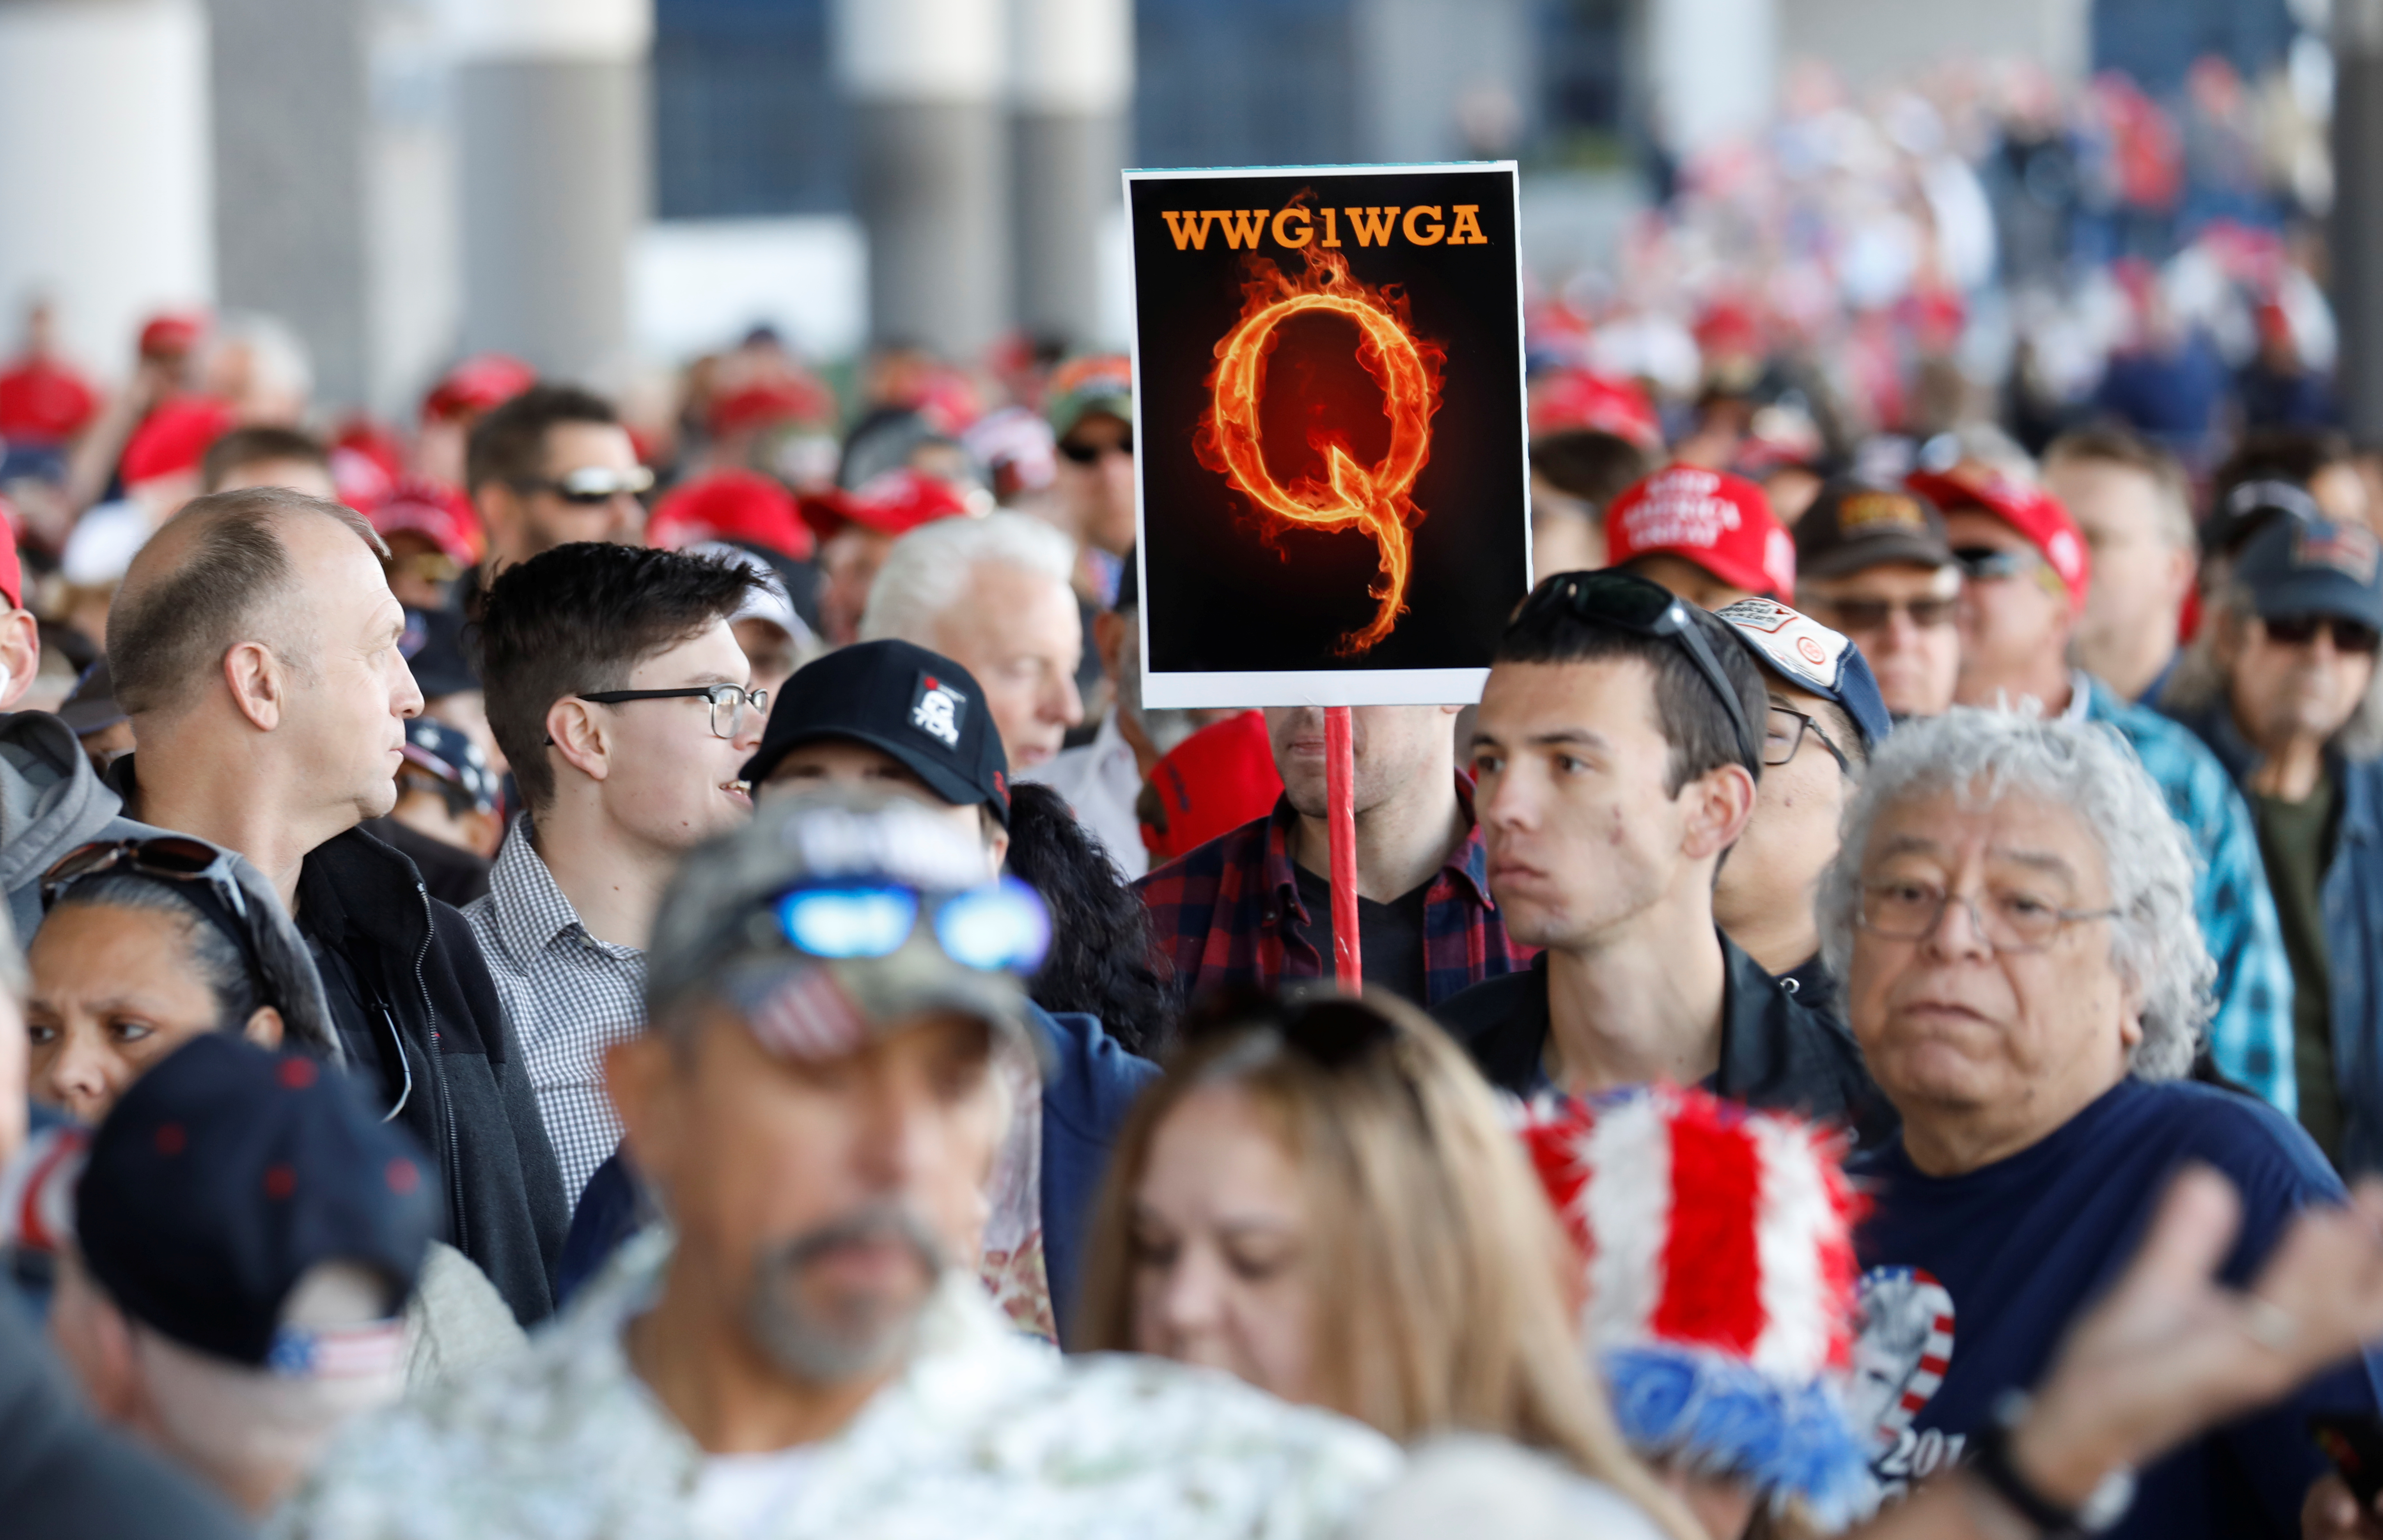 "A man in the crowd holds a QAnon sign with the group's abbreviation of their rallying cry ""Where we go one, we go all"" as crowds gather to attend U.S. President Donald Trump's campaign rally at the Las Vegas Convention Center in Las Vegas, Nevada, U.S., February 21, 2020. REUTERS/Patrick Fallon"